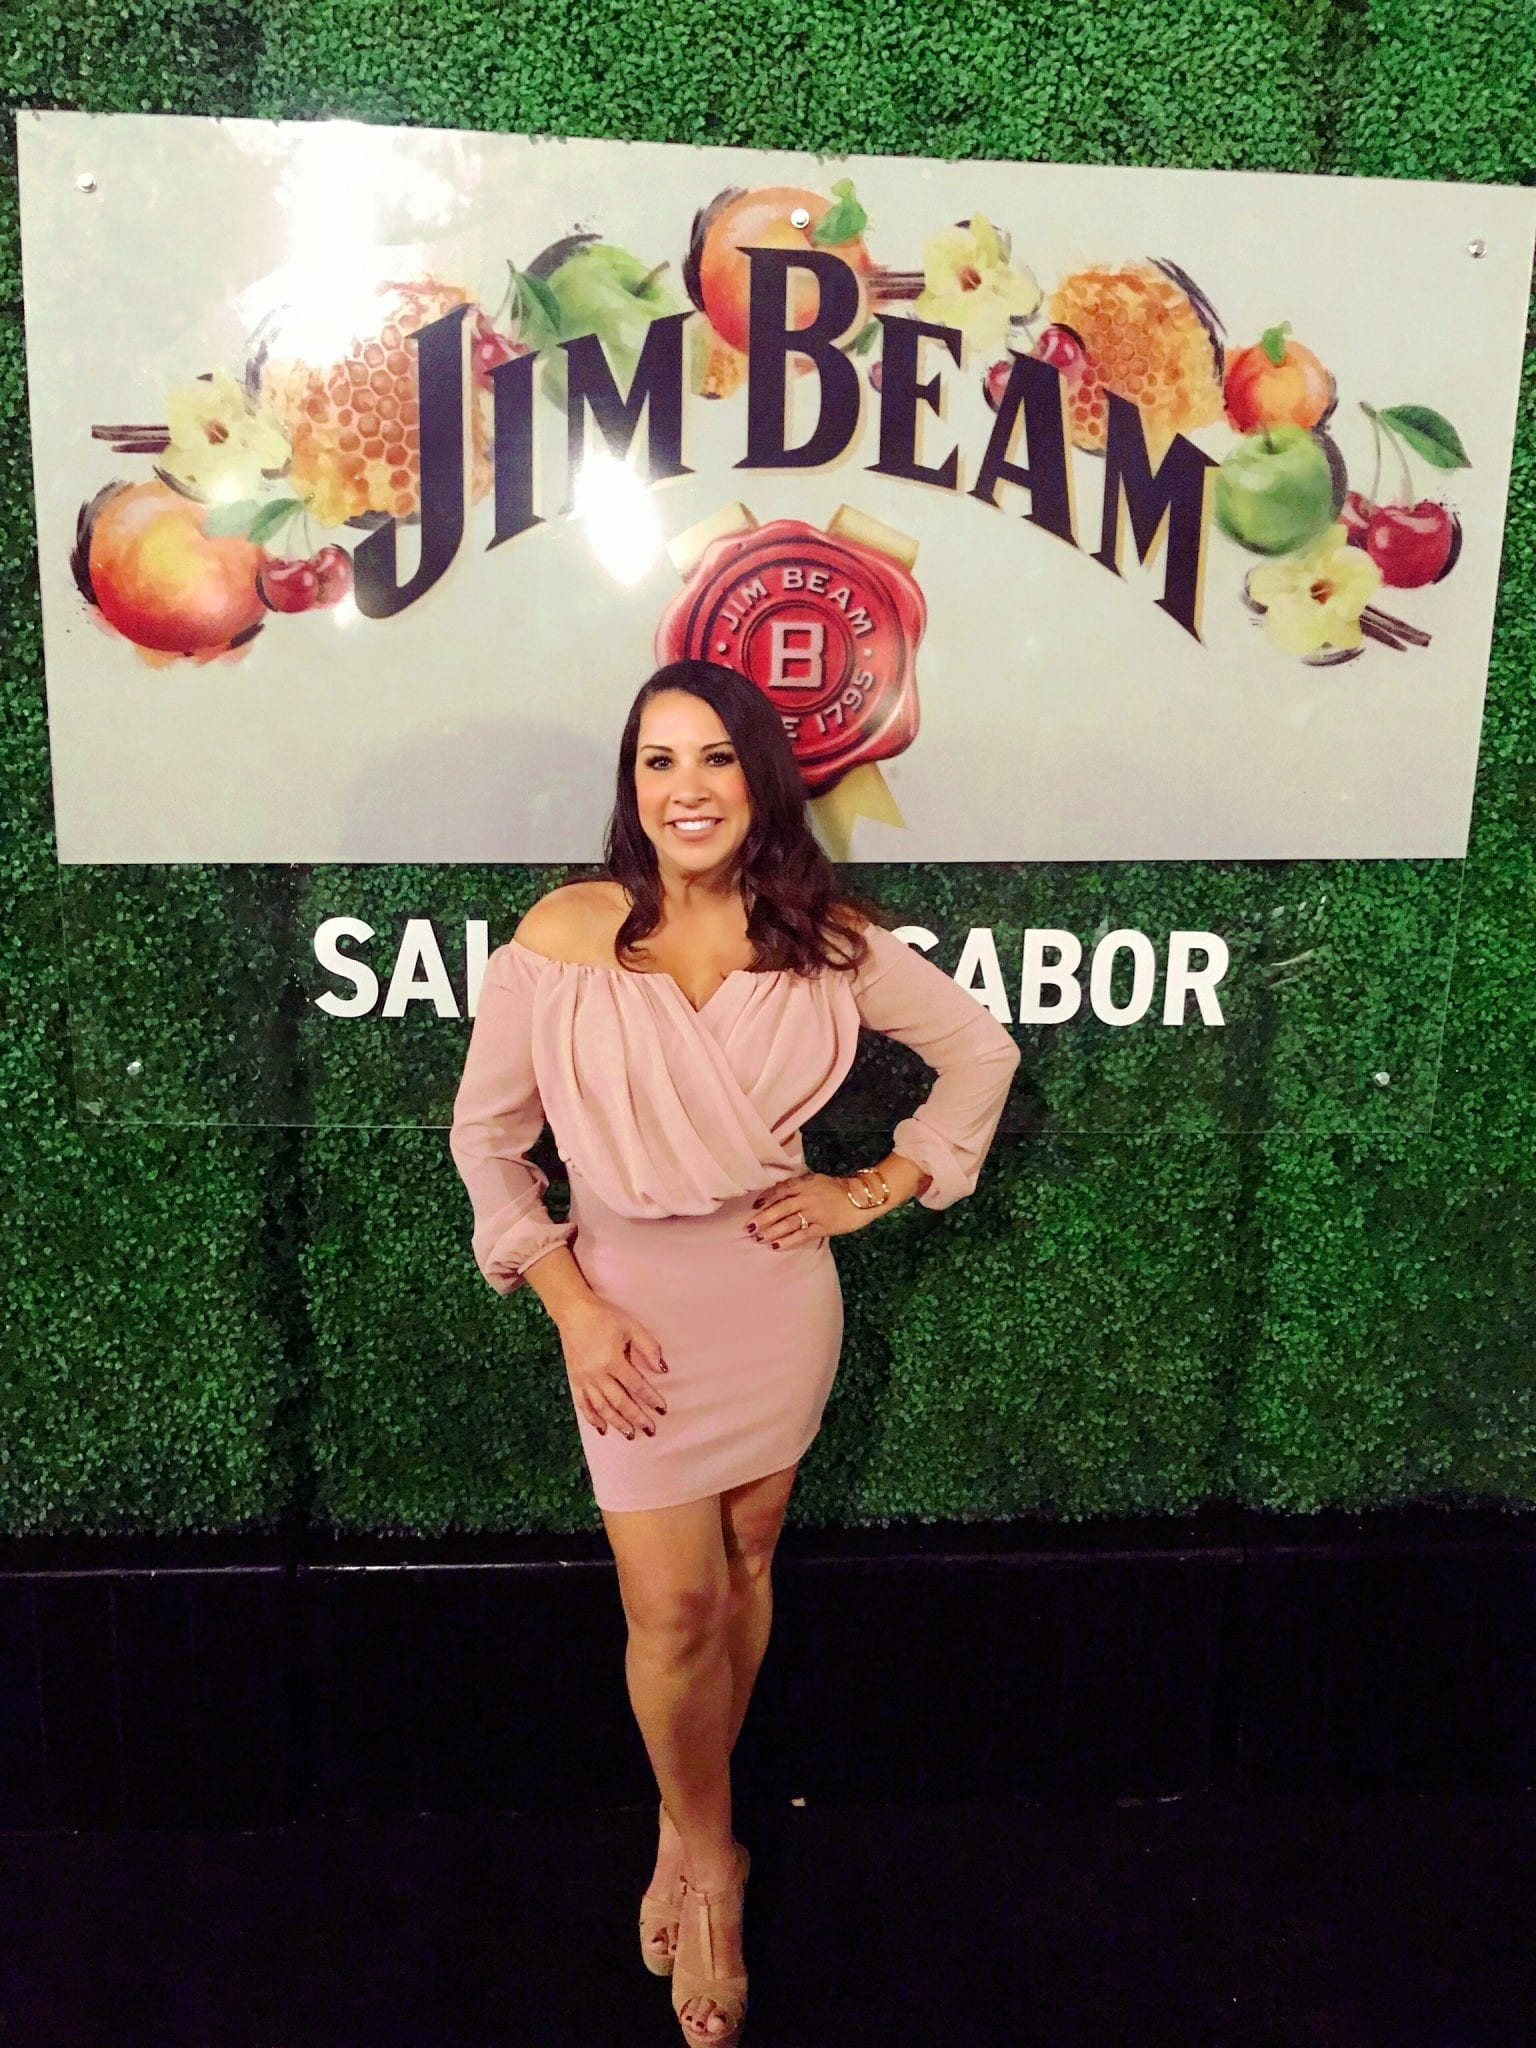 Jim Beam was one of our Sponsors at Hispanicize